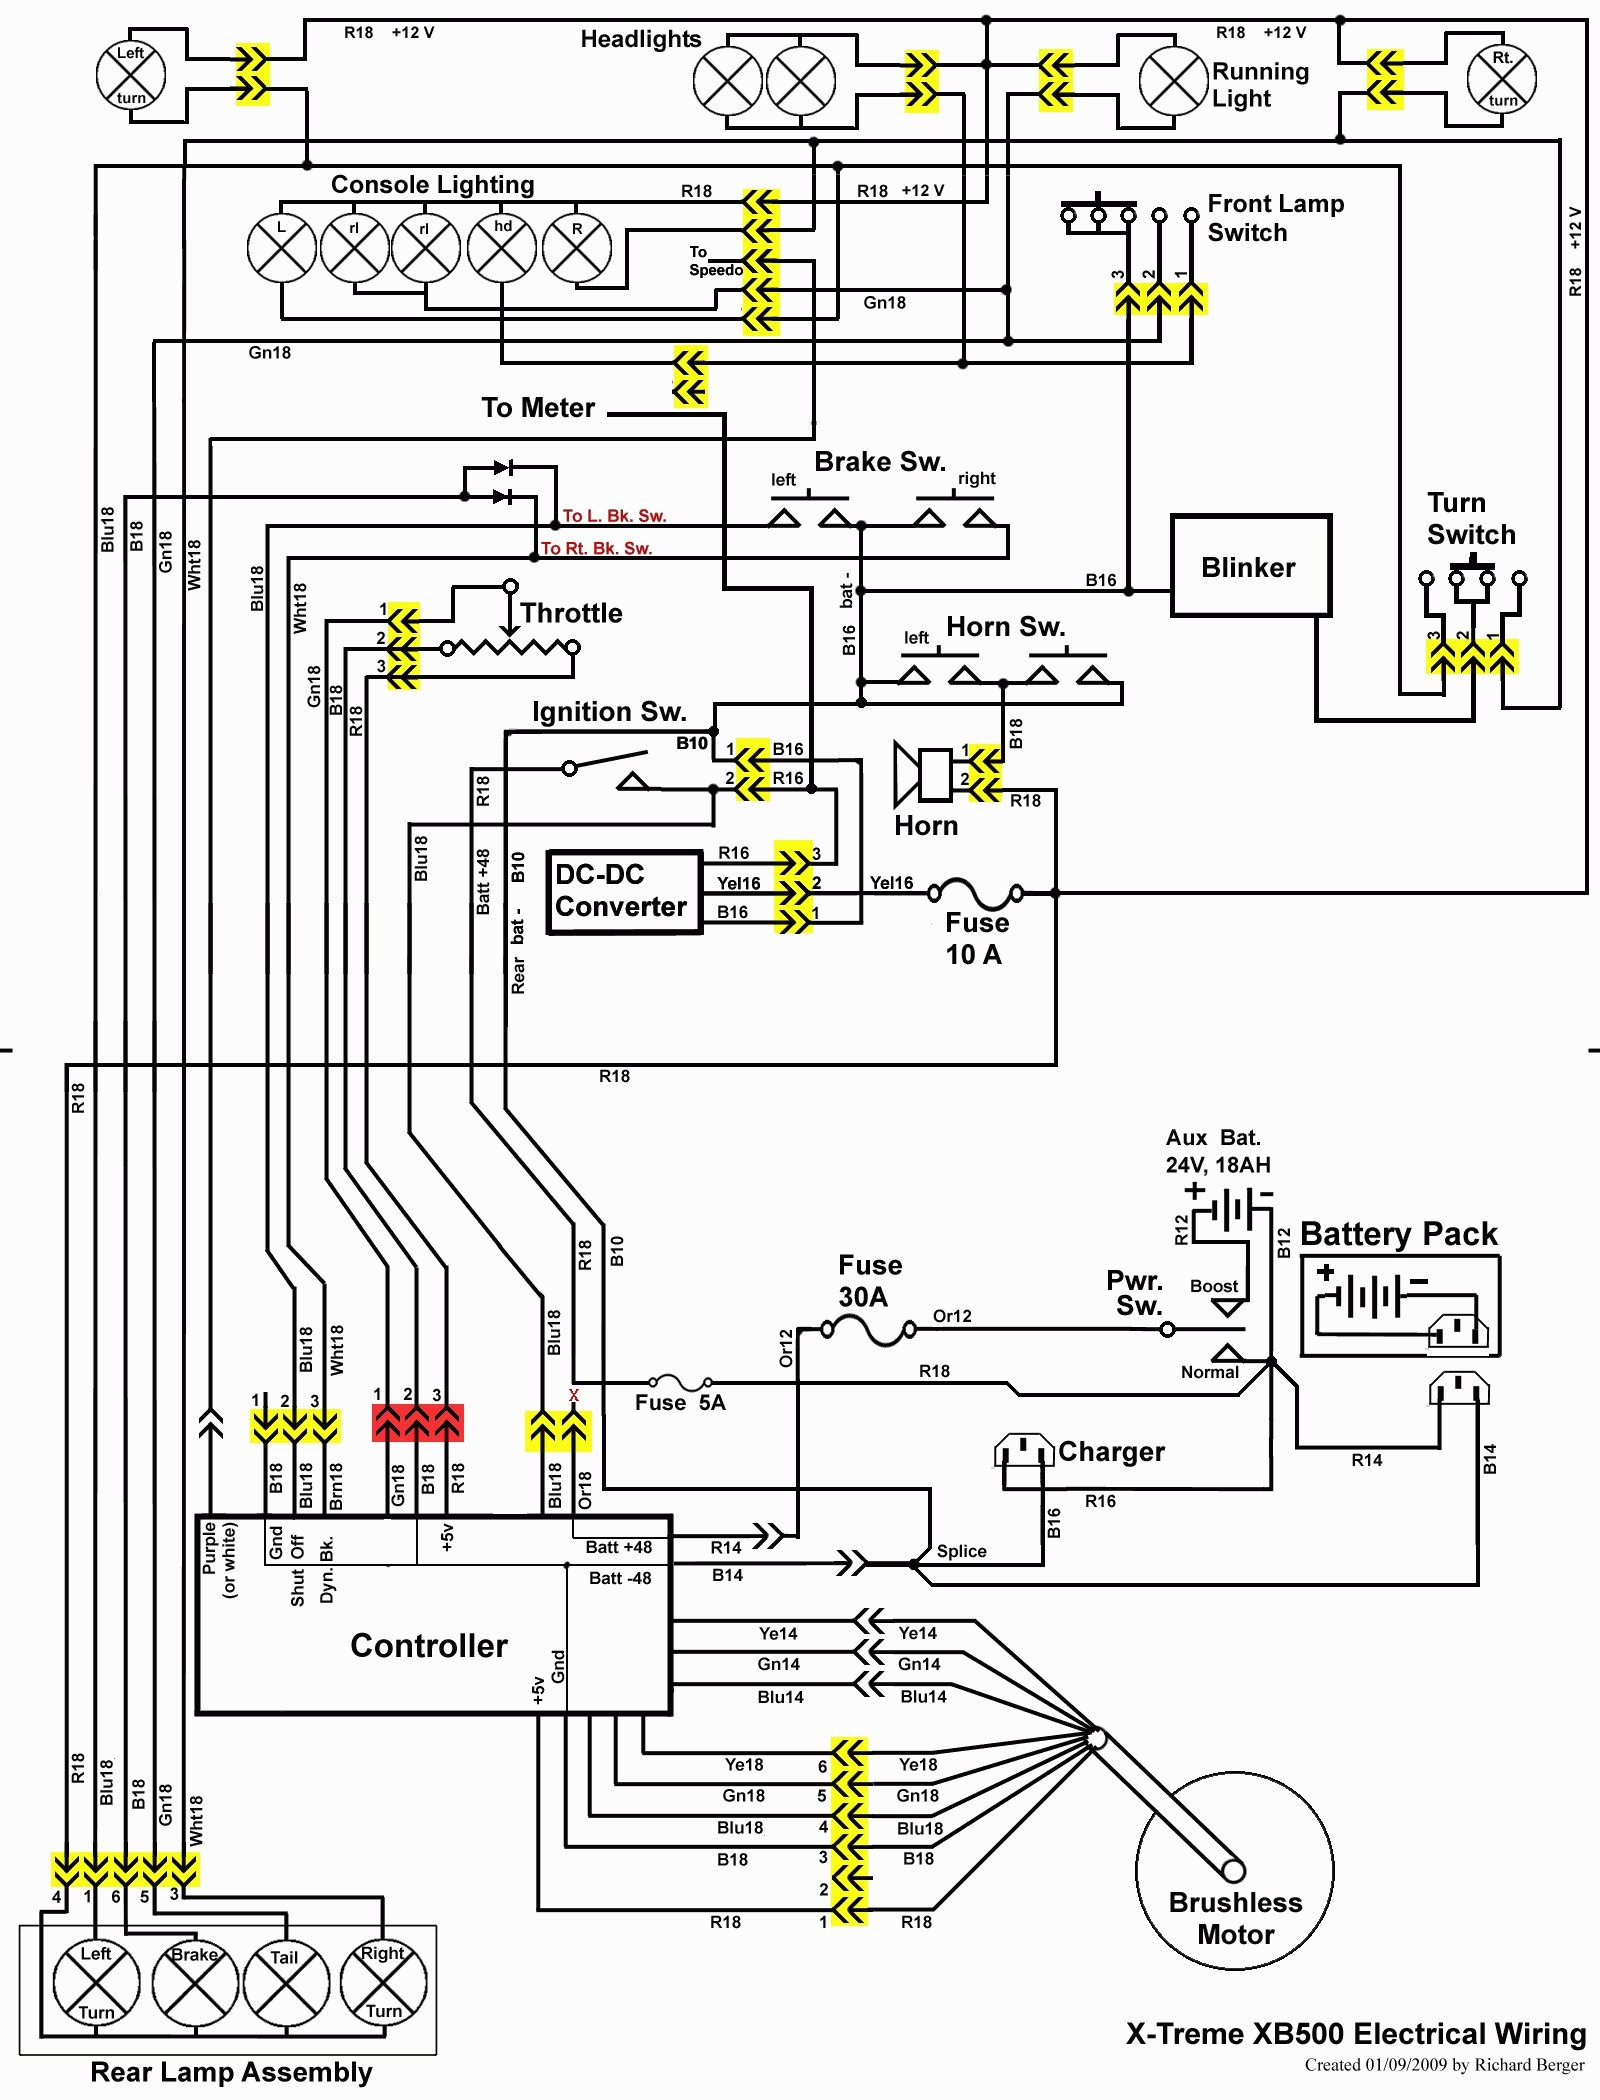 Maddog Scooter Wiring Diagram - Auto Electrical Wiring Diagram on jazzy power chair wiring diagram, jazzy motor wiring diagram, wheelchair wiring diagram, jazzy elite wiring diagram, jazzy scooter accessories, jazzy 600 wiring diagram, jazzy jeep wiring diagram, jazzy select wiring diagram,